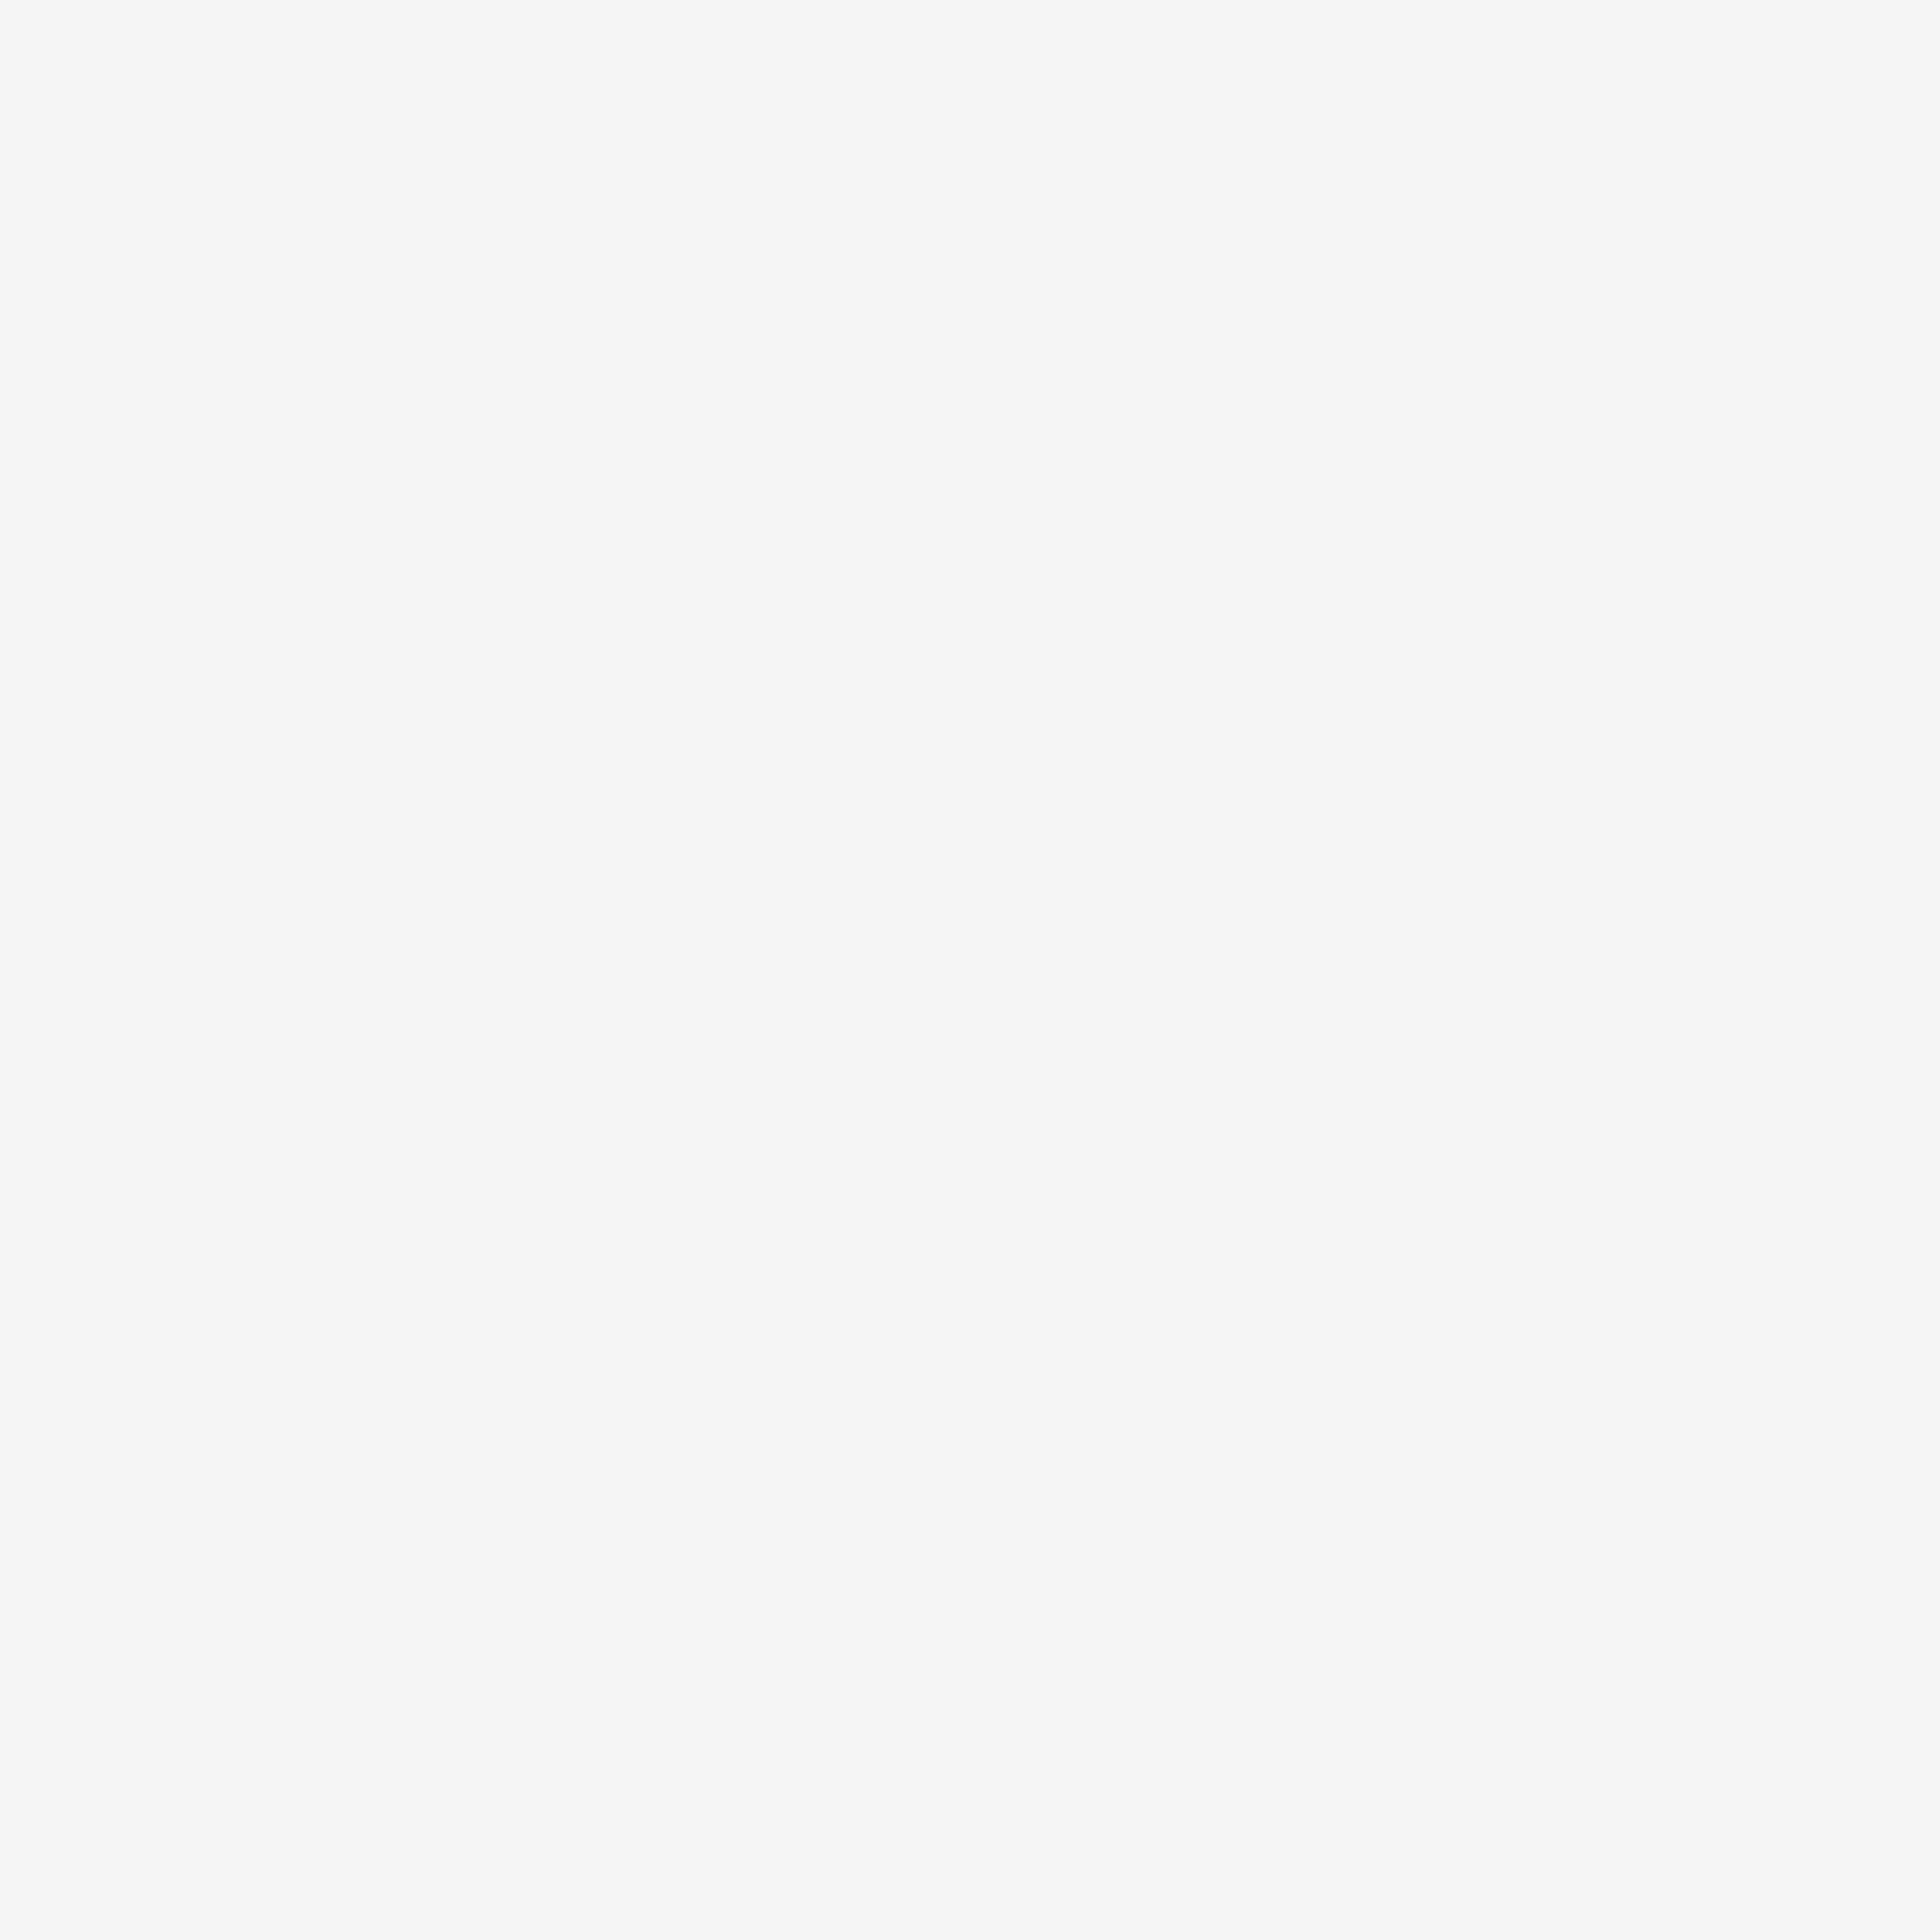 buy best clearance prices new products Adidas Tennis Adizero Ubersonic 3 X Parley - Tennisschoenen ...